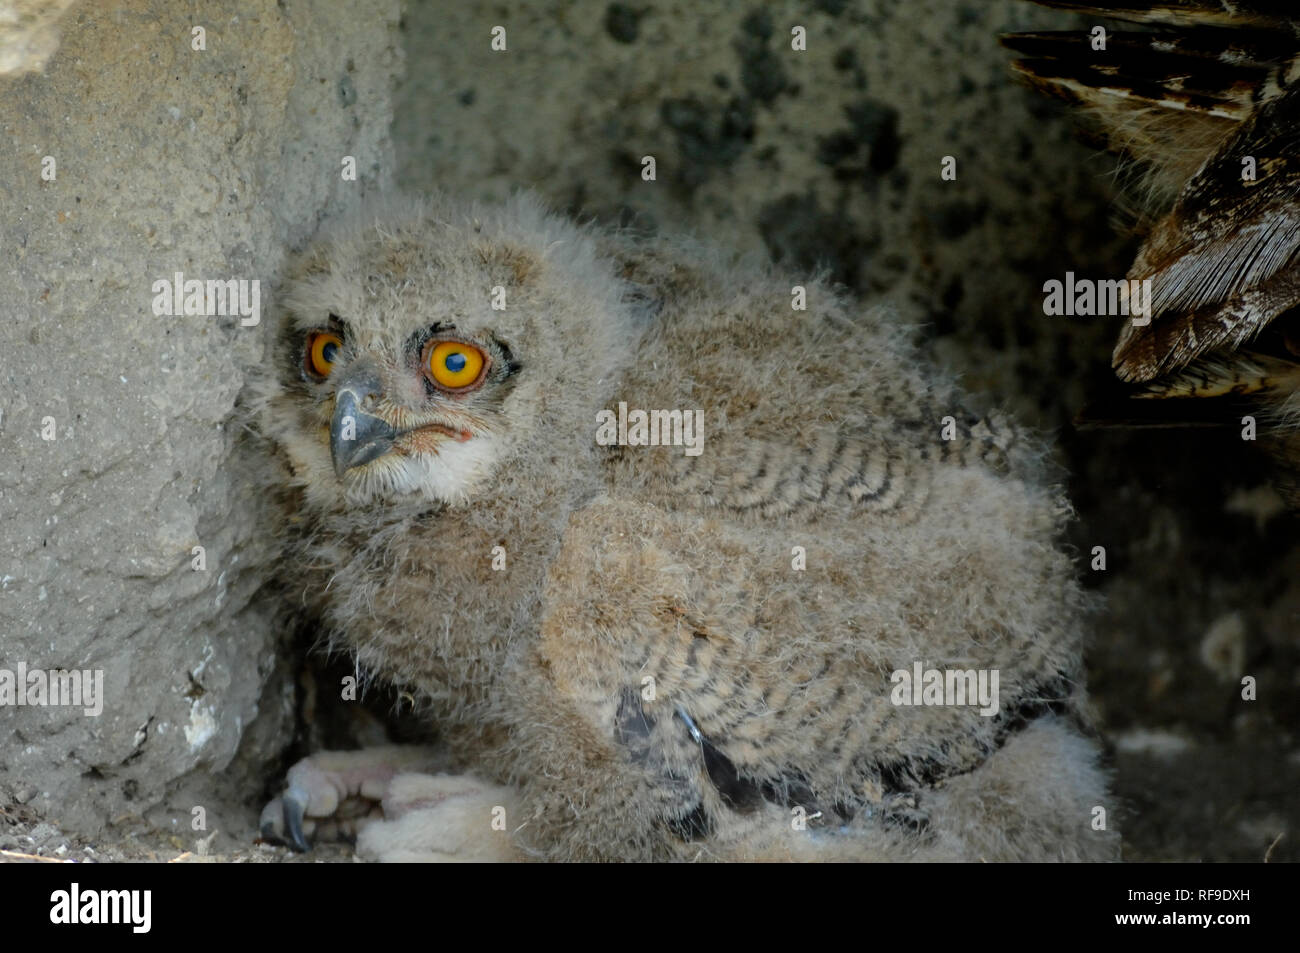 Eurasian Eagle Owl Chick, Bubo bubo, or Eagle-Owl Chick Camargue France - Stock Image